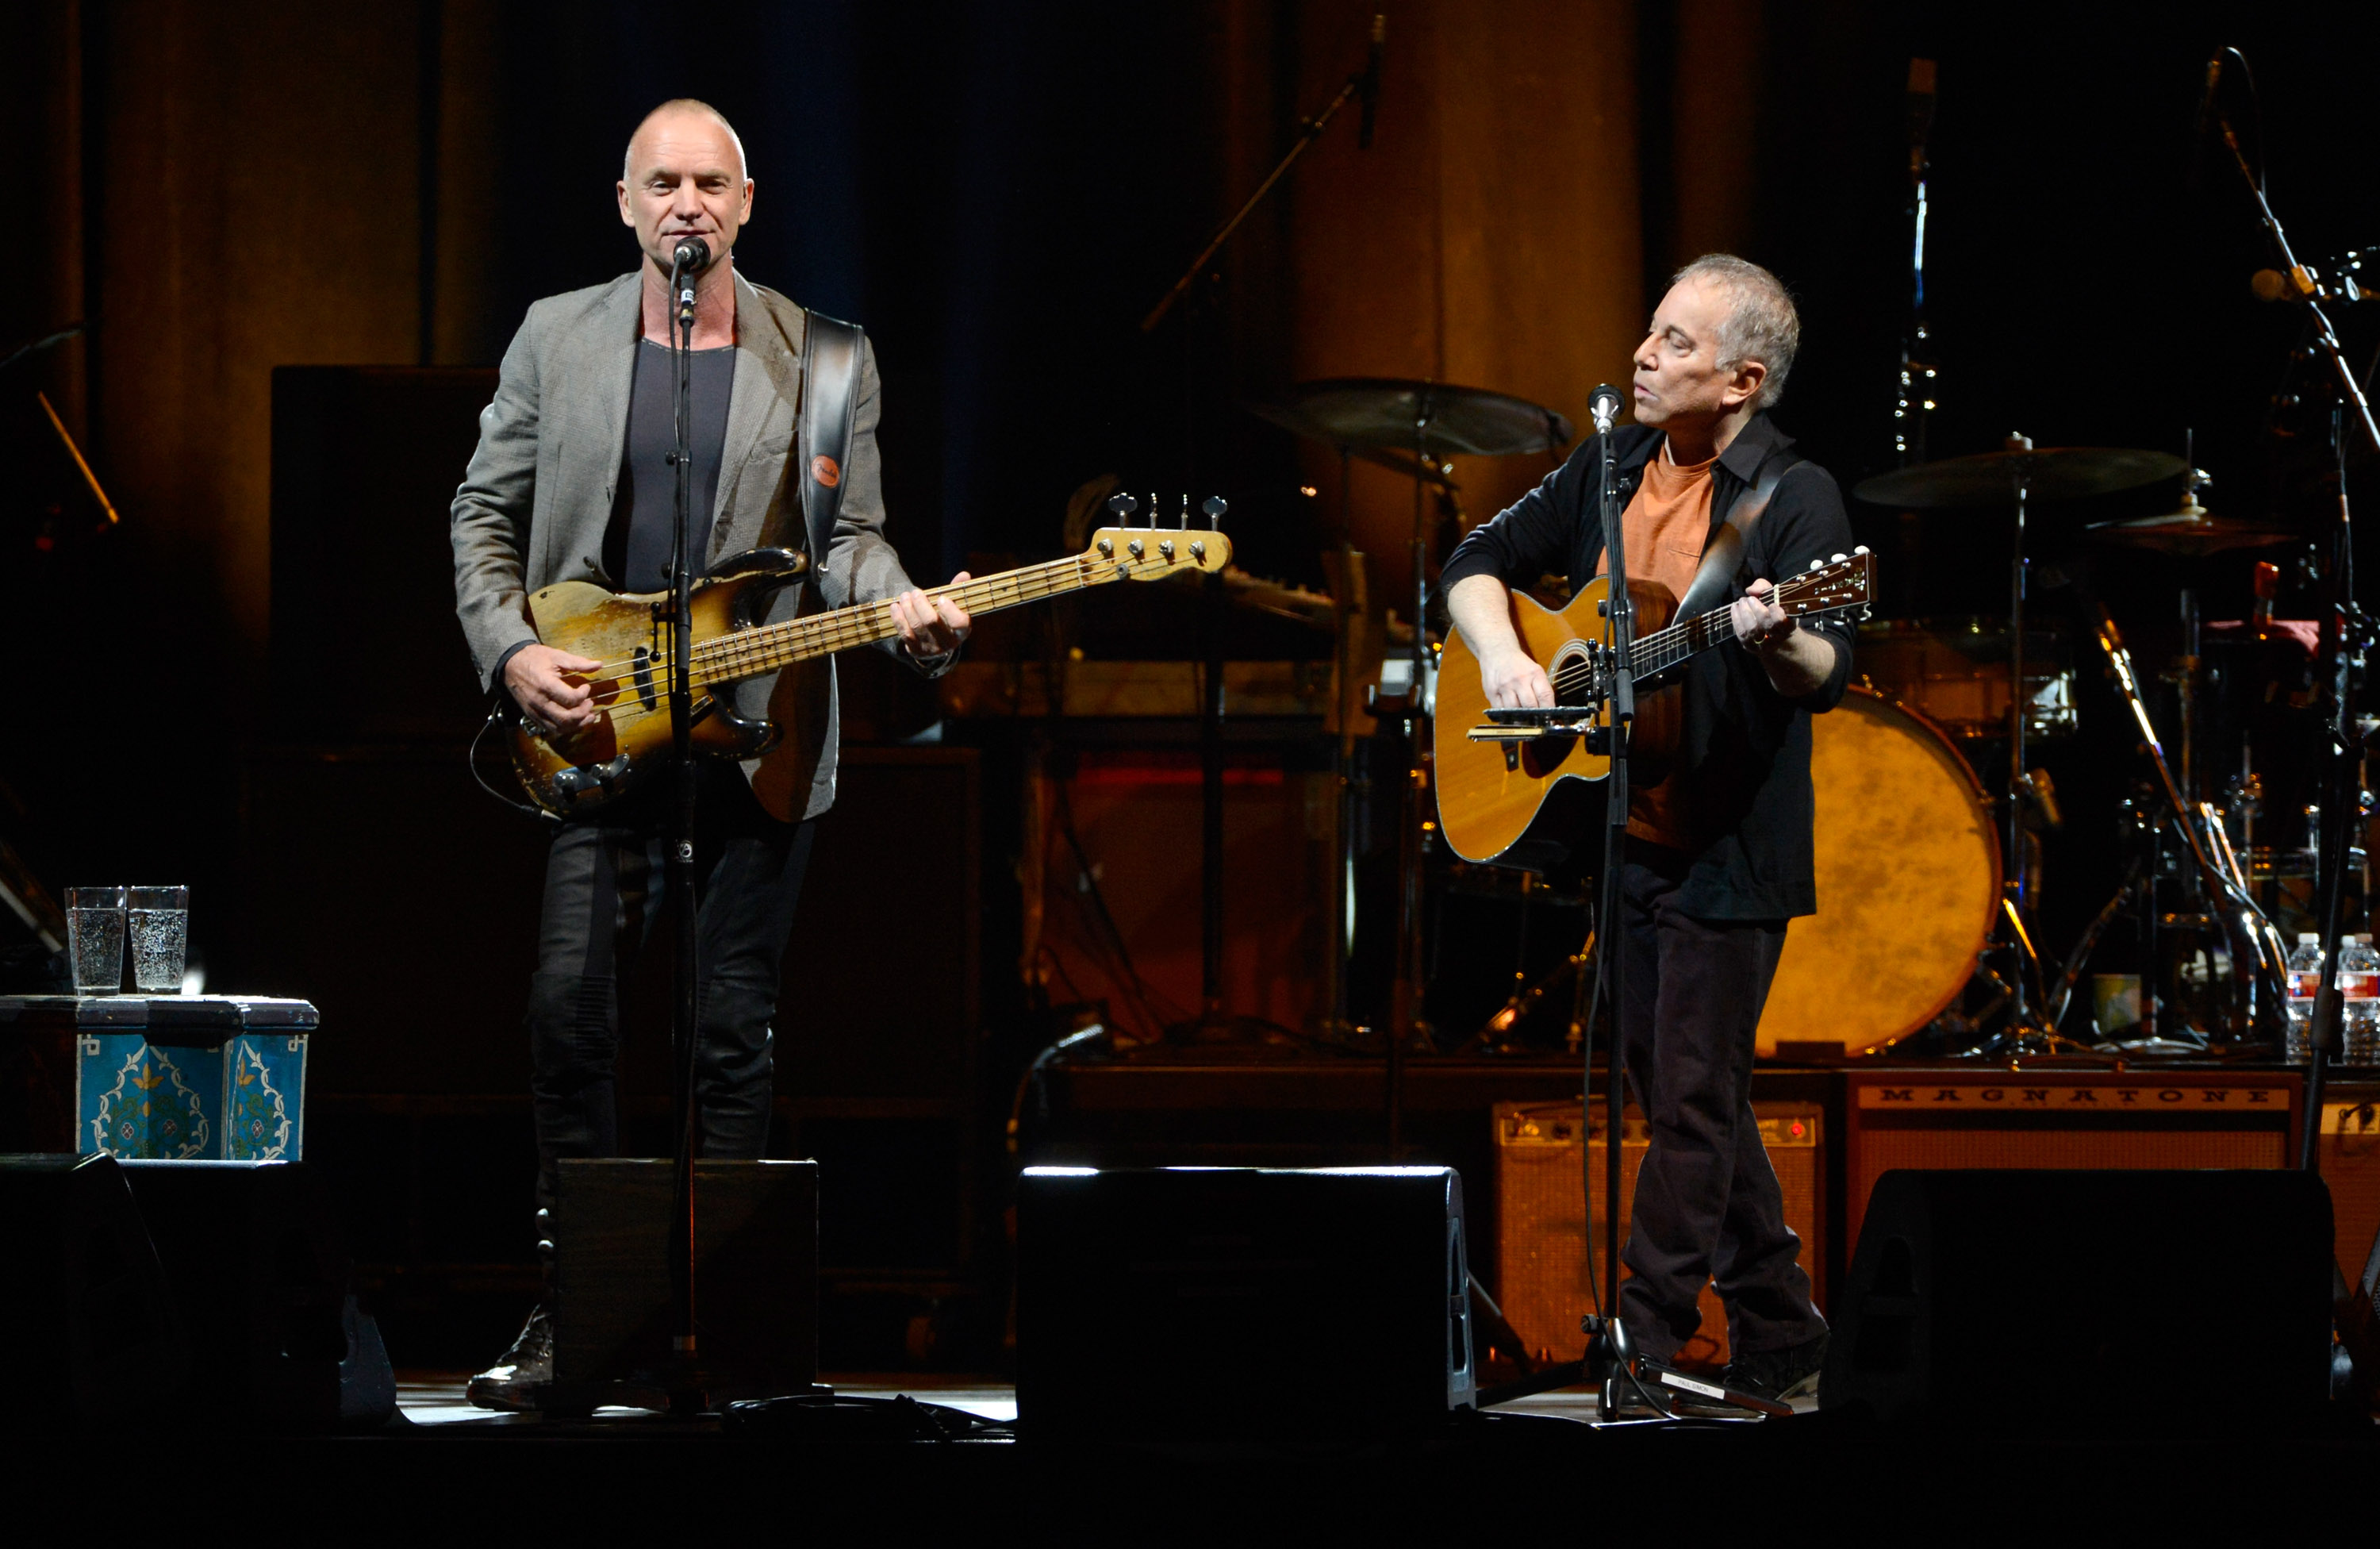 """Sting & Paul Simon """"On Stage Together"""" Tour - Opening Night"""